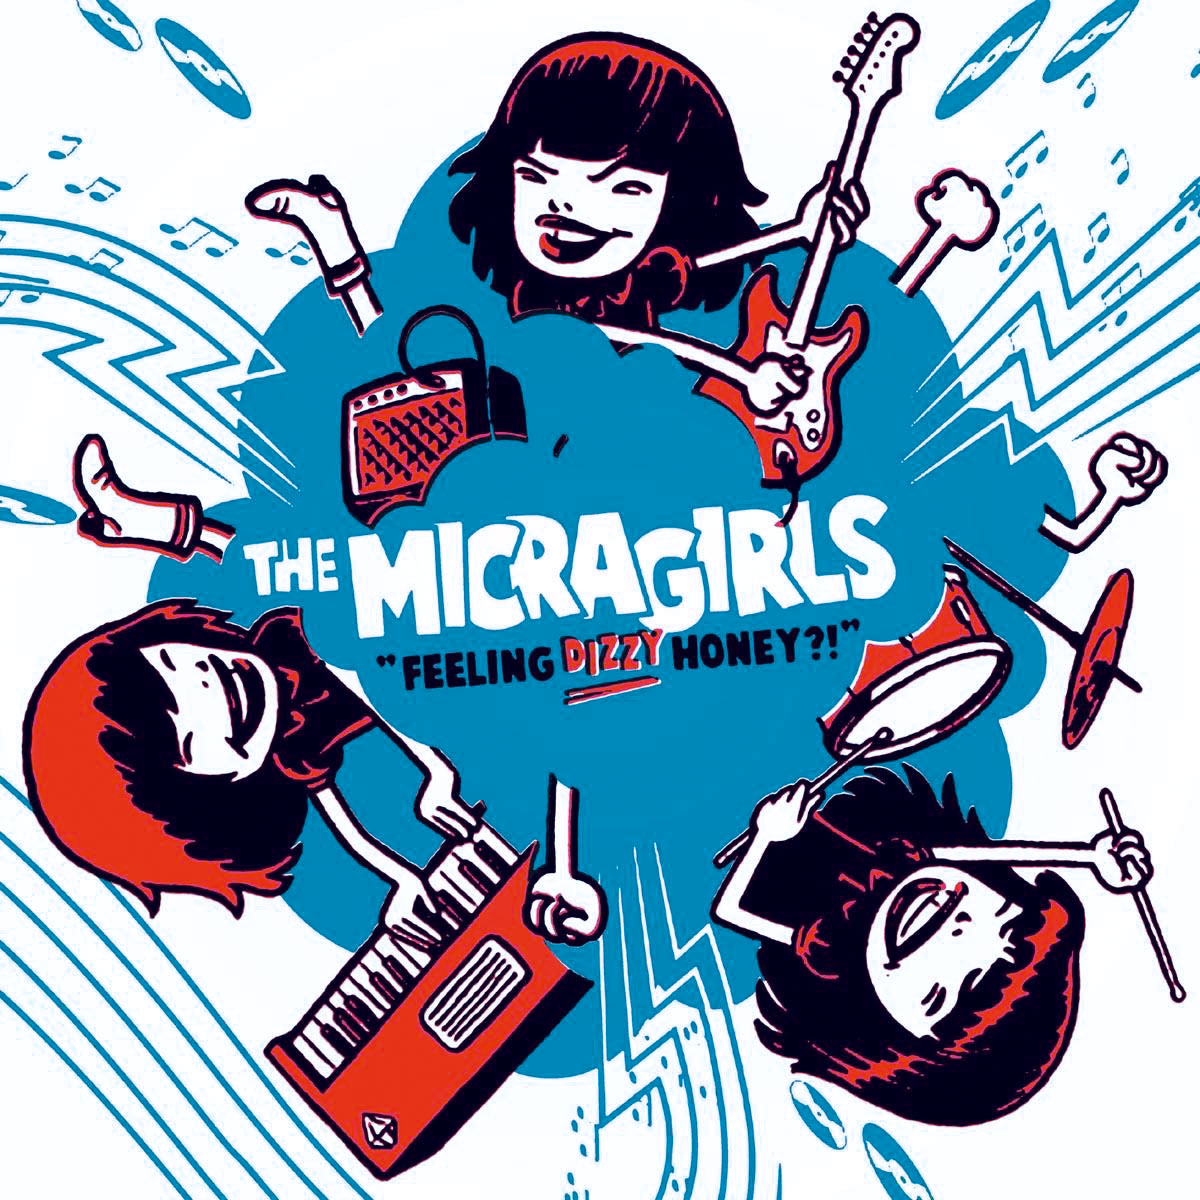 The Micragirls - Feeling Dizzy Honey?!